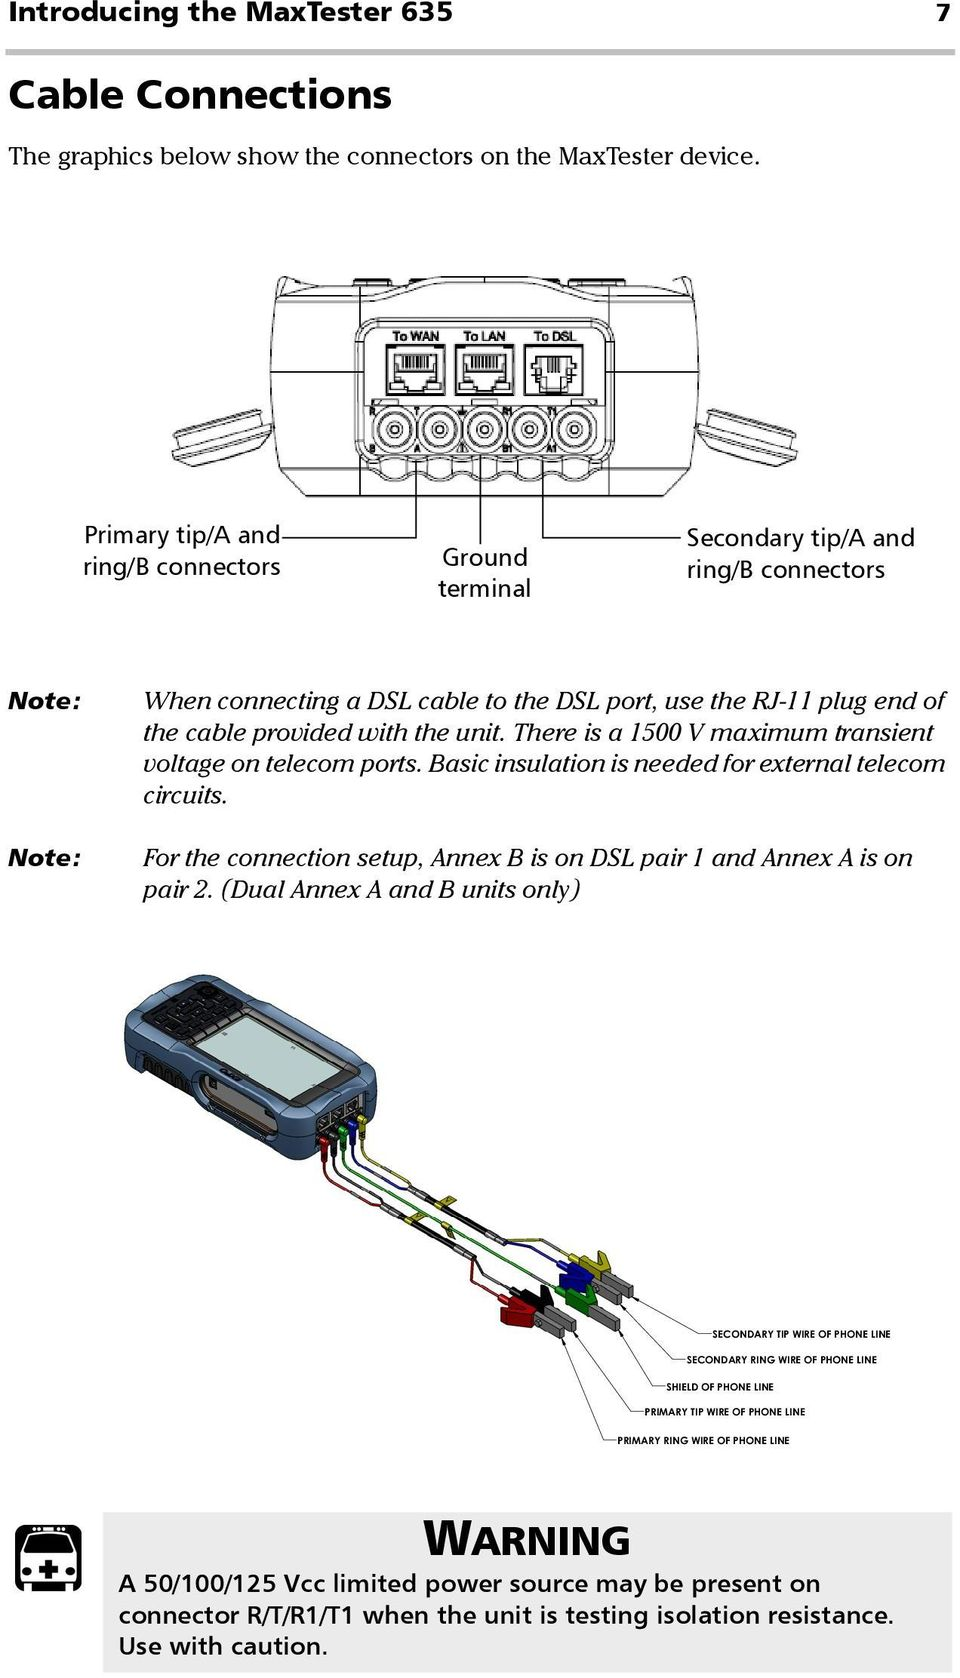 Maxtester 635 Copper And Dsl Multi Play Test Set User Guide Pdf Wiring Configuration The Cable Provided With Unit There Is A 1500 V Maximum Transient Voltage On